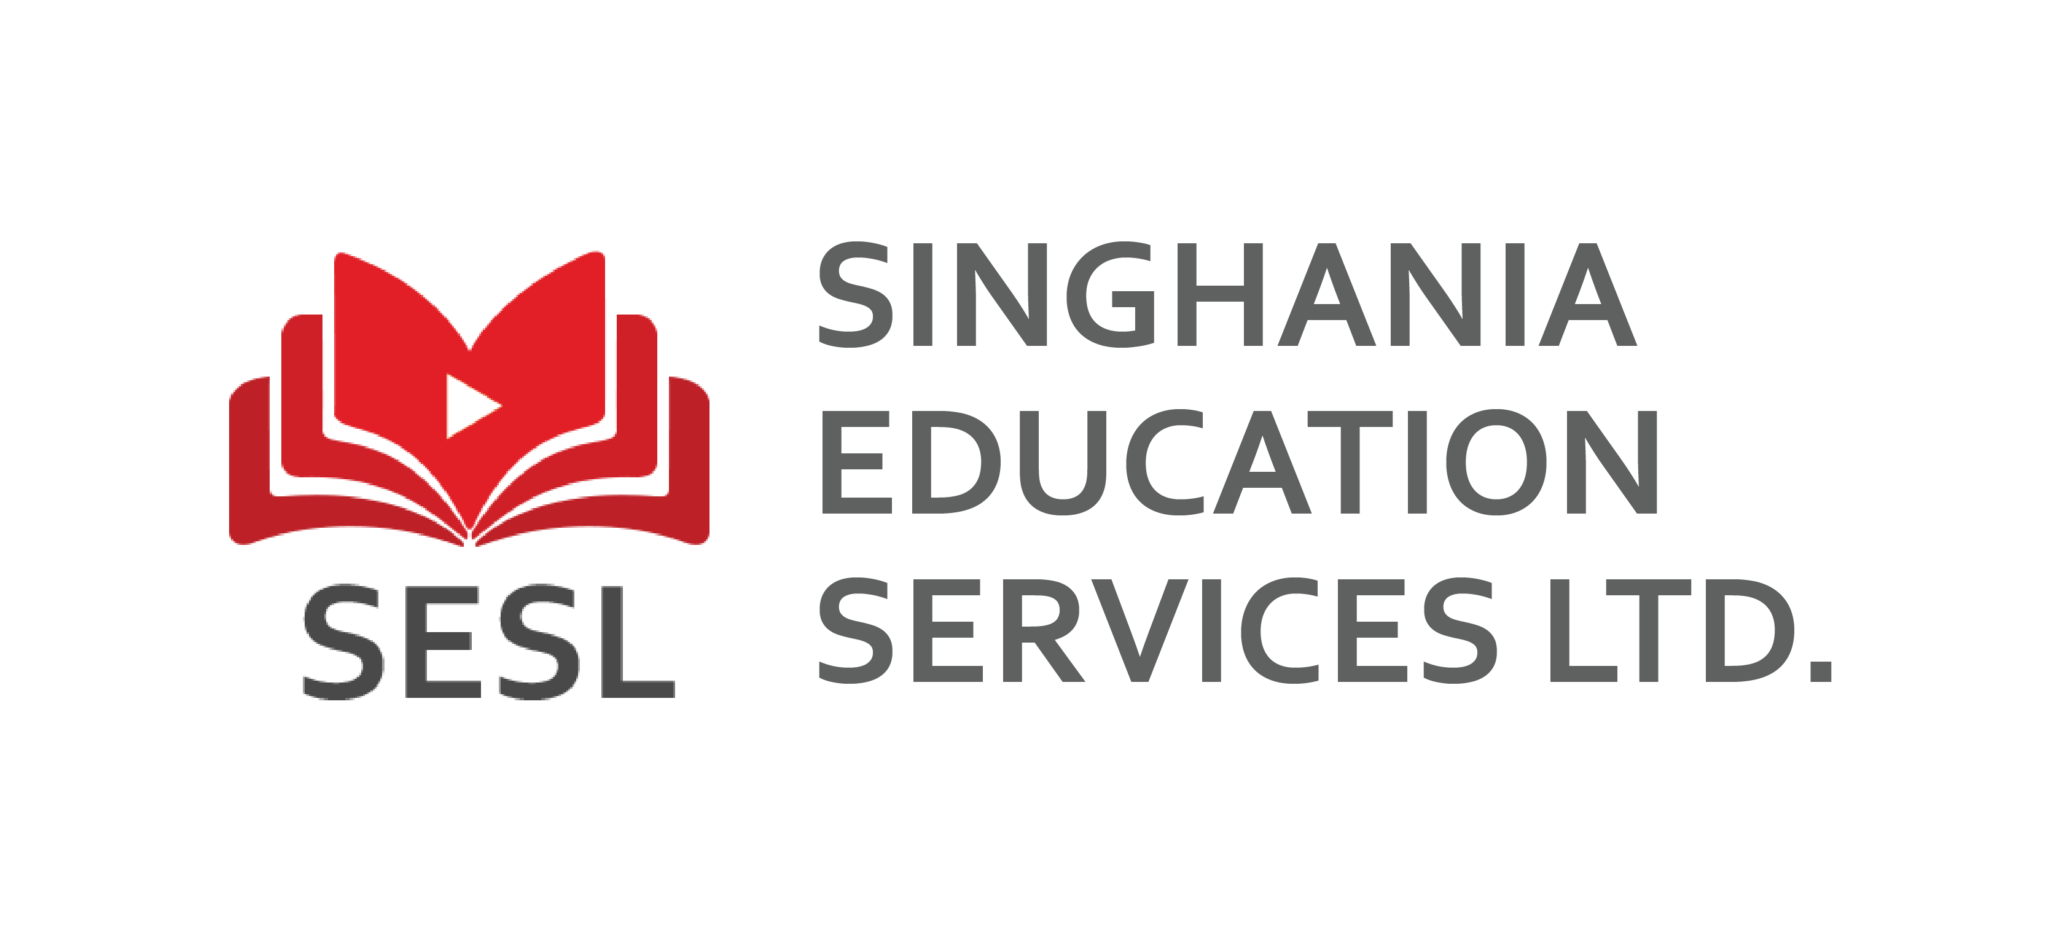 Singhania Education Services Limited